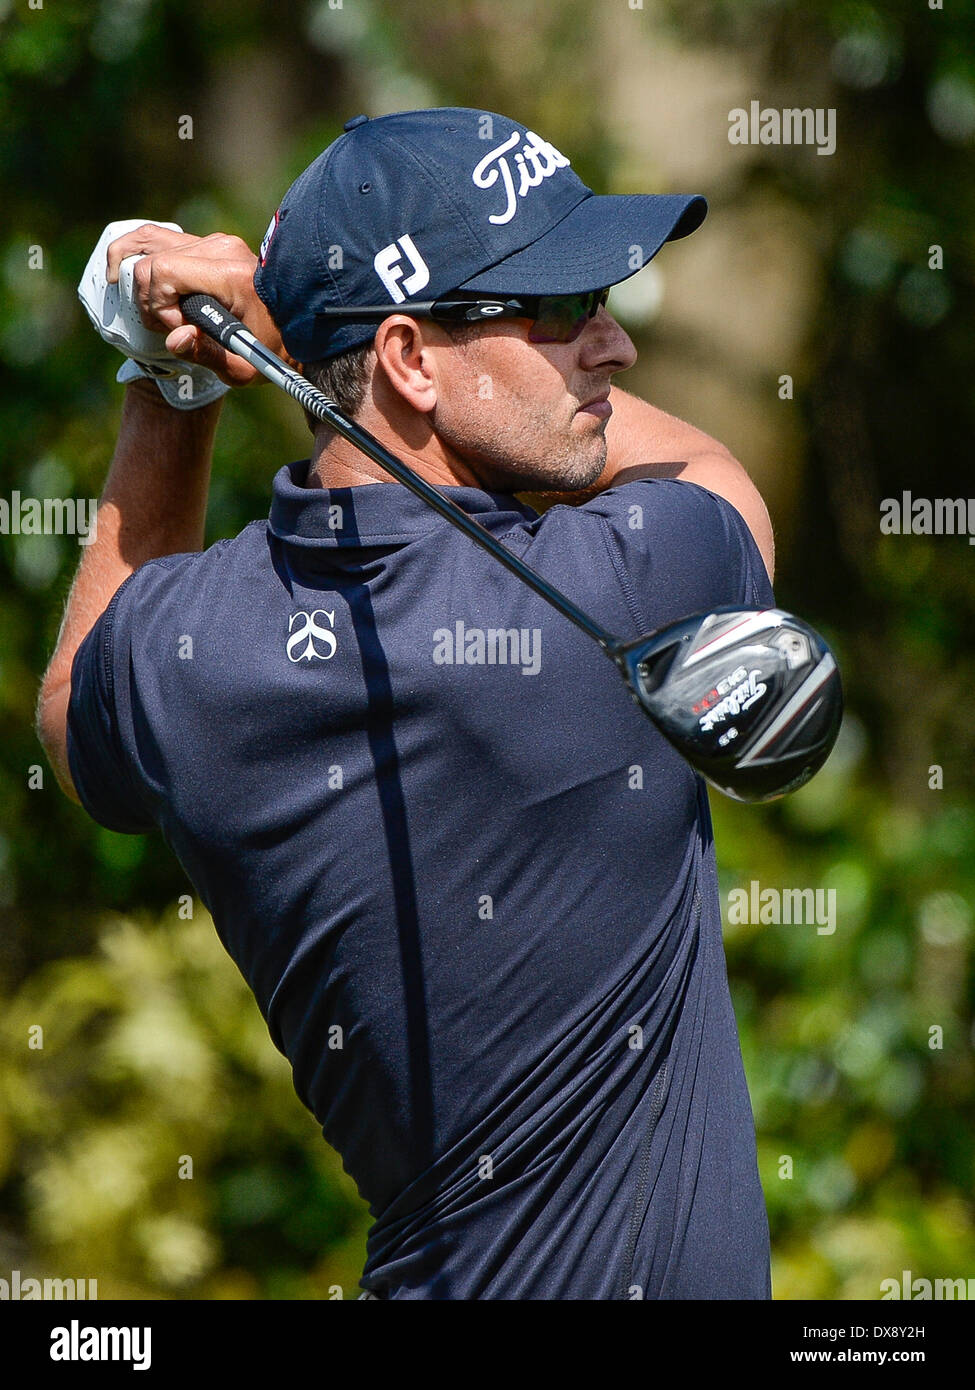 20th March 2014. Adam Scott on the 3rd tee during first round golf action of the Arnold Palmer Invitational presented by Mastercard held at Arnold Palmer's ...